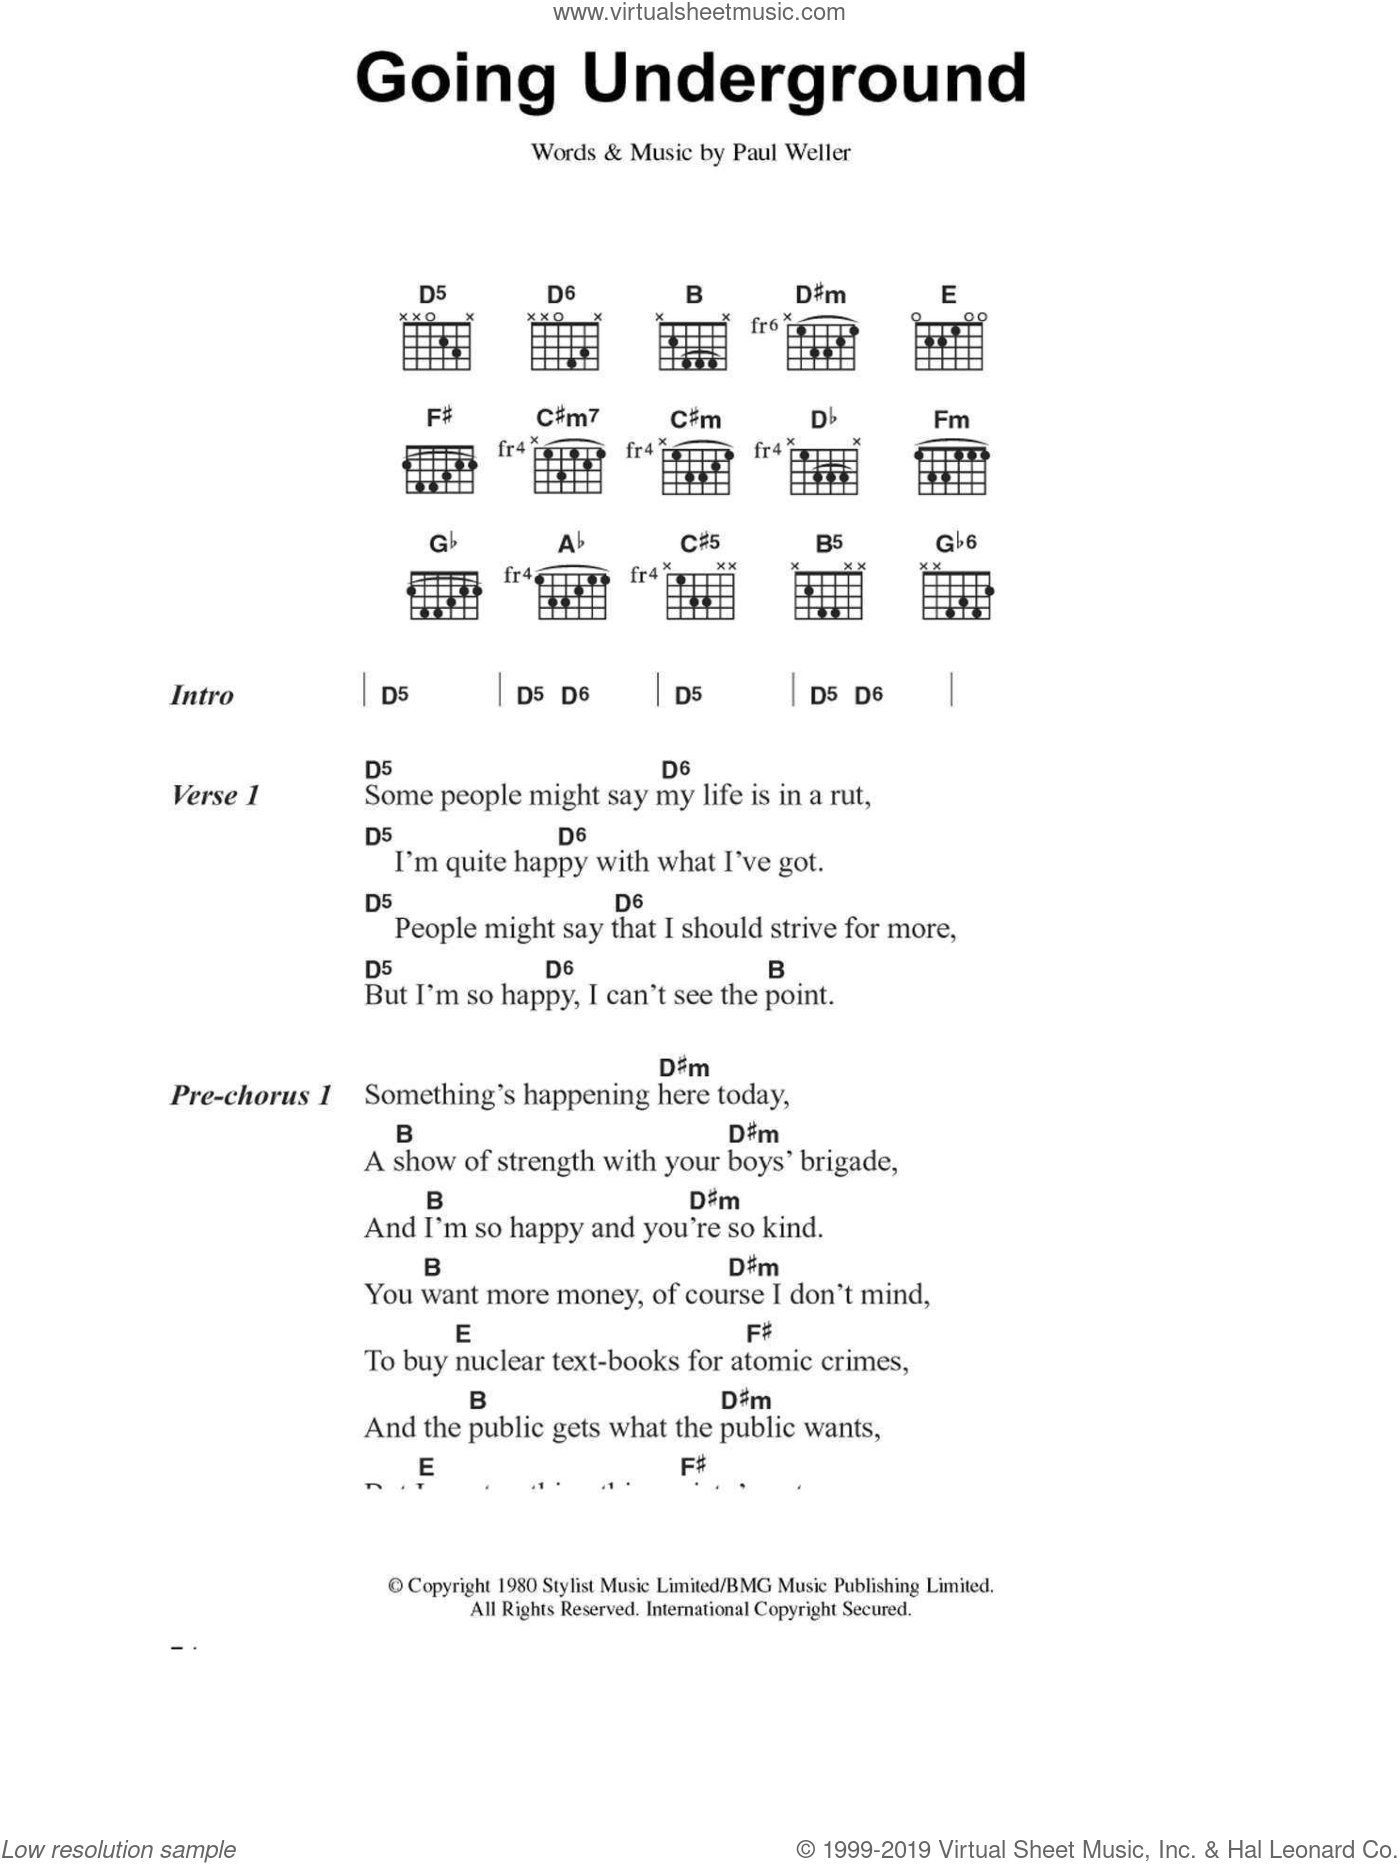 Jam - Going Underground sheet music for guitar (chords) [PDF]